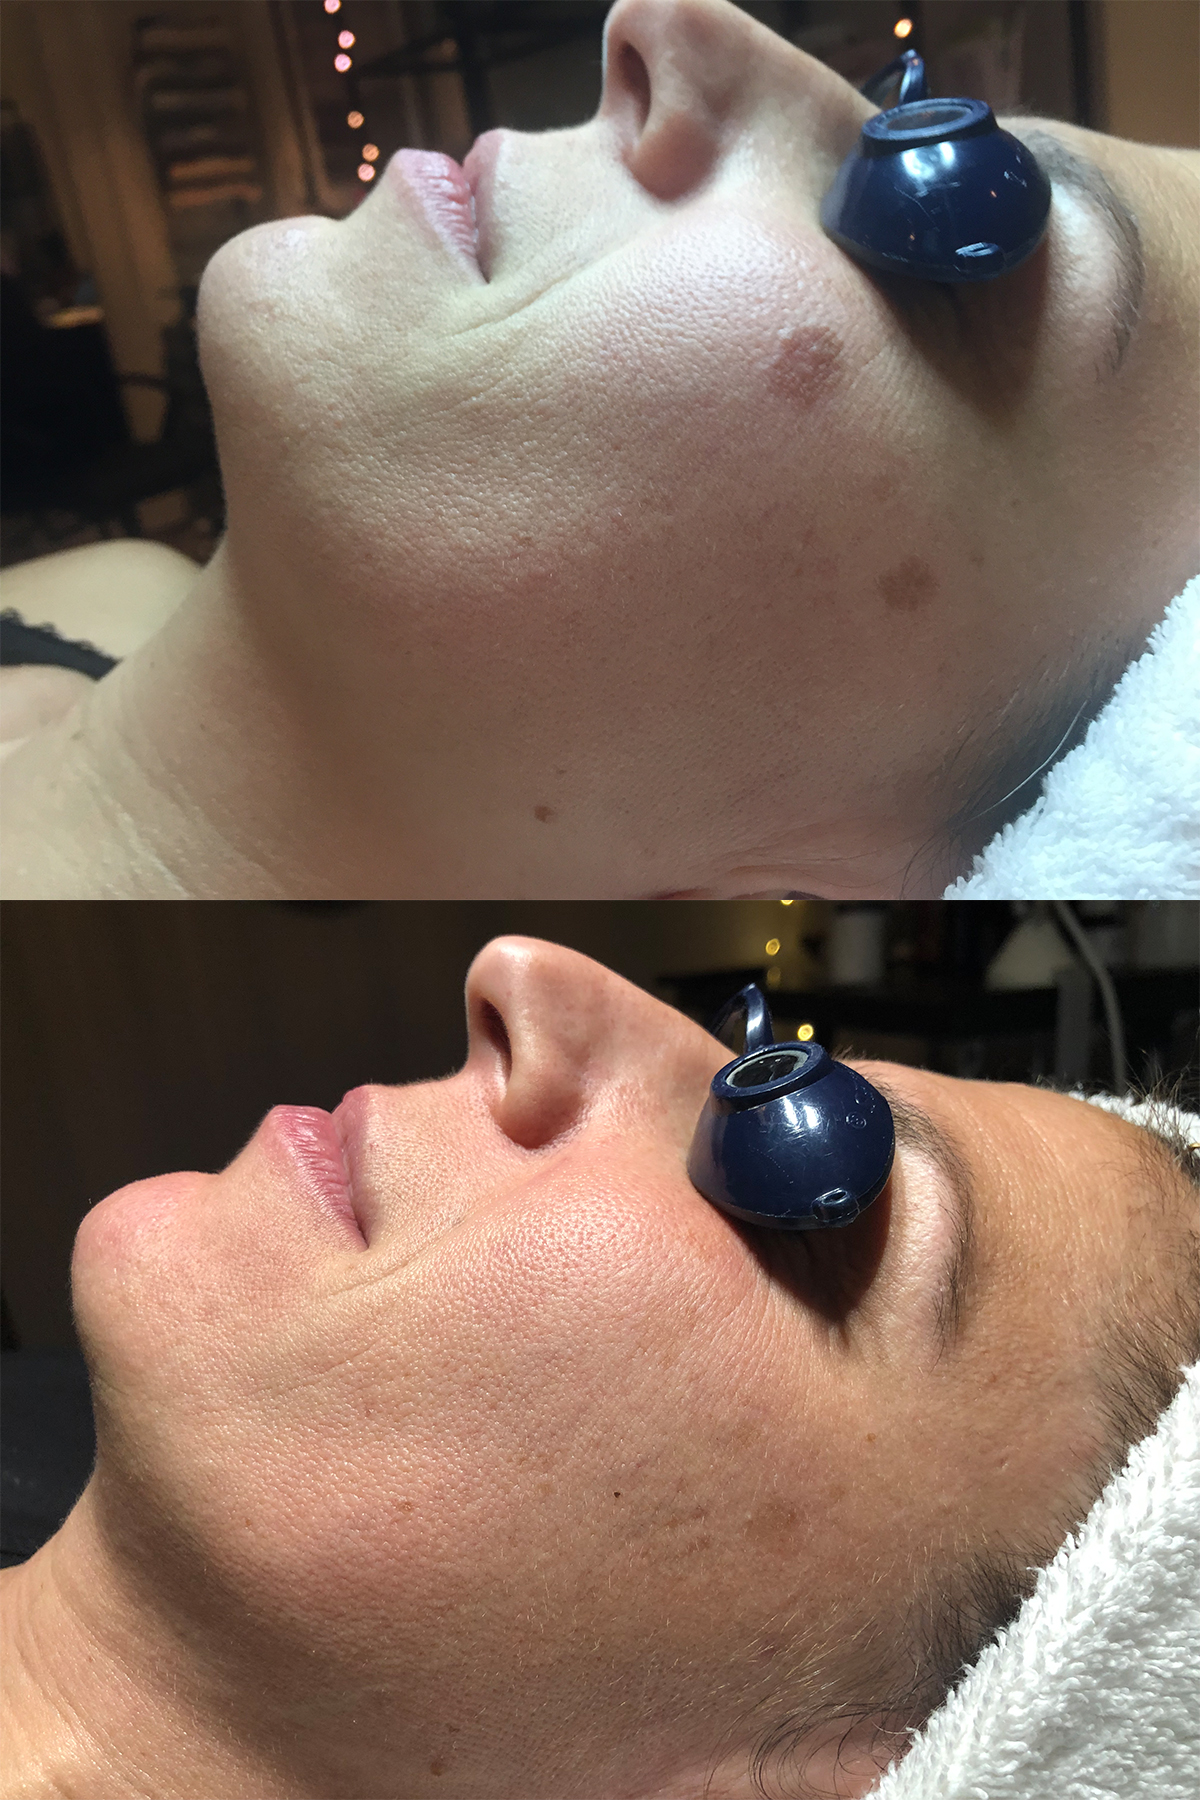 Pigmentation solved by using a combination of Vitamins, Collagen Induction and Silk Peel. Total 3 treatments.